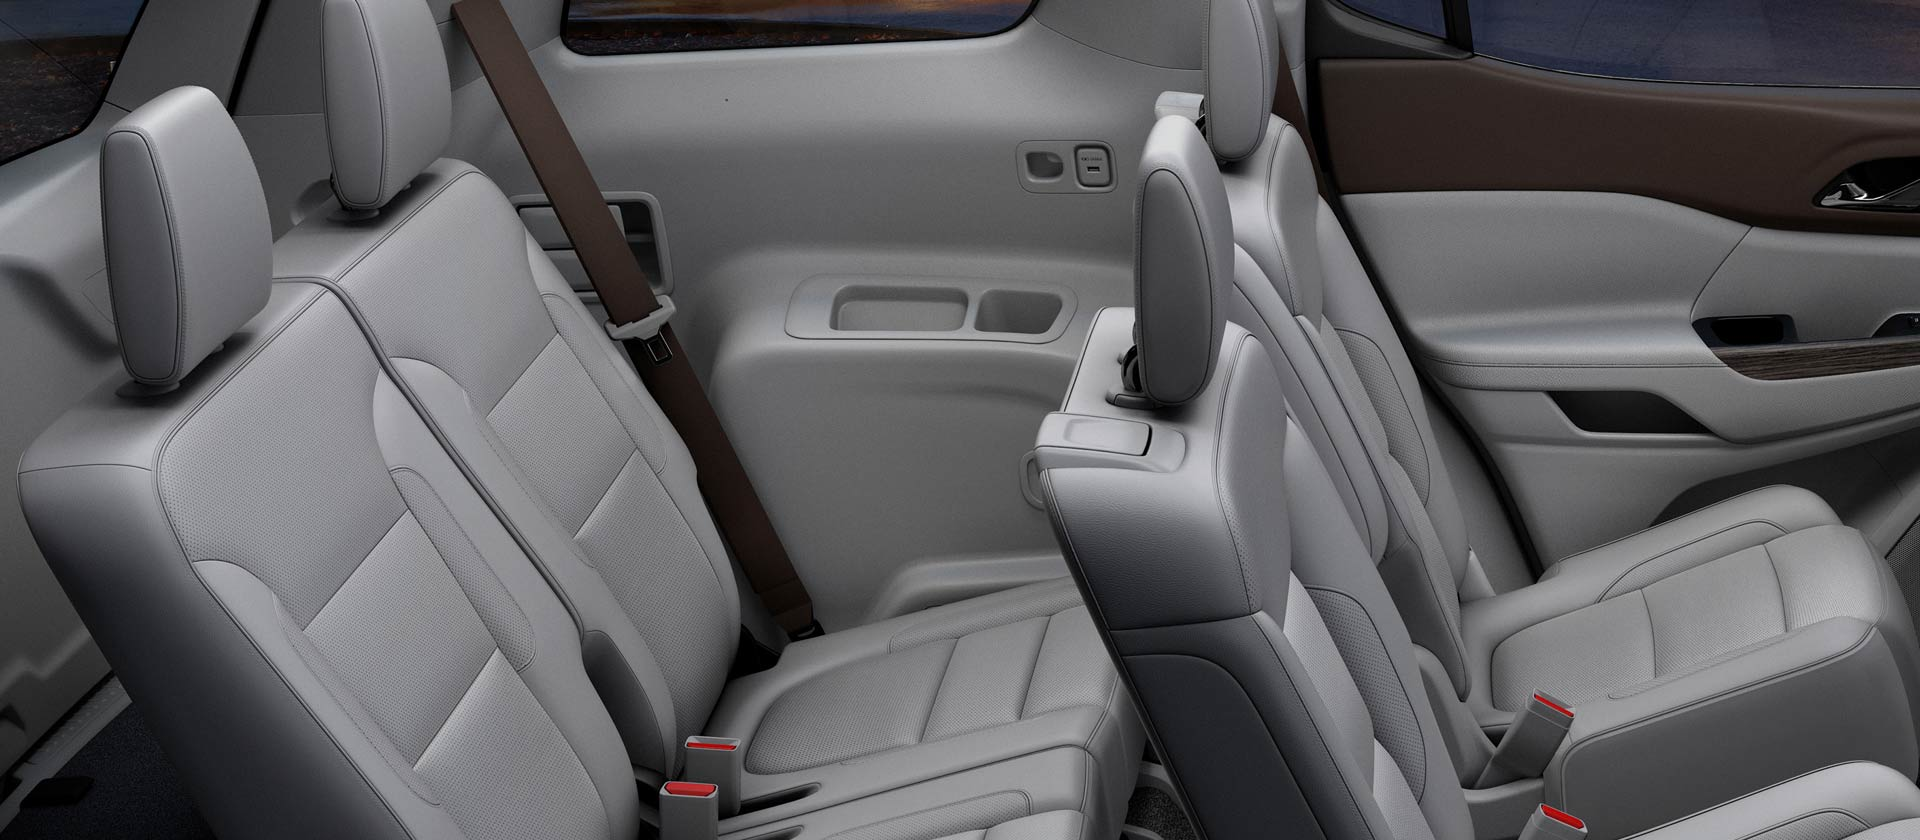 Spacious Seating in the GMC Acadia